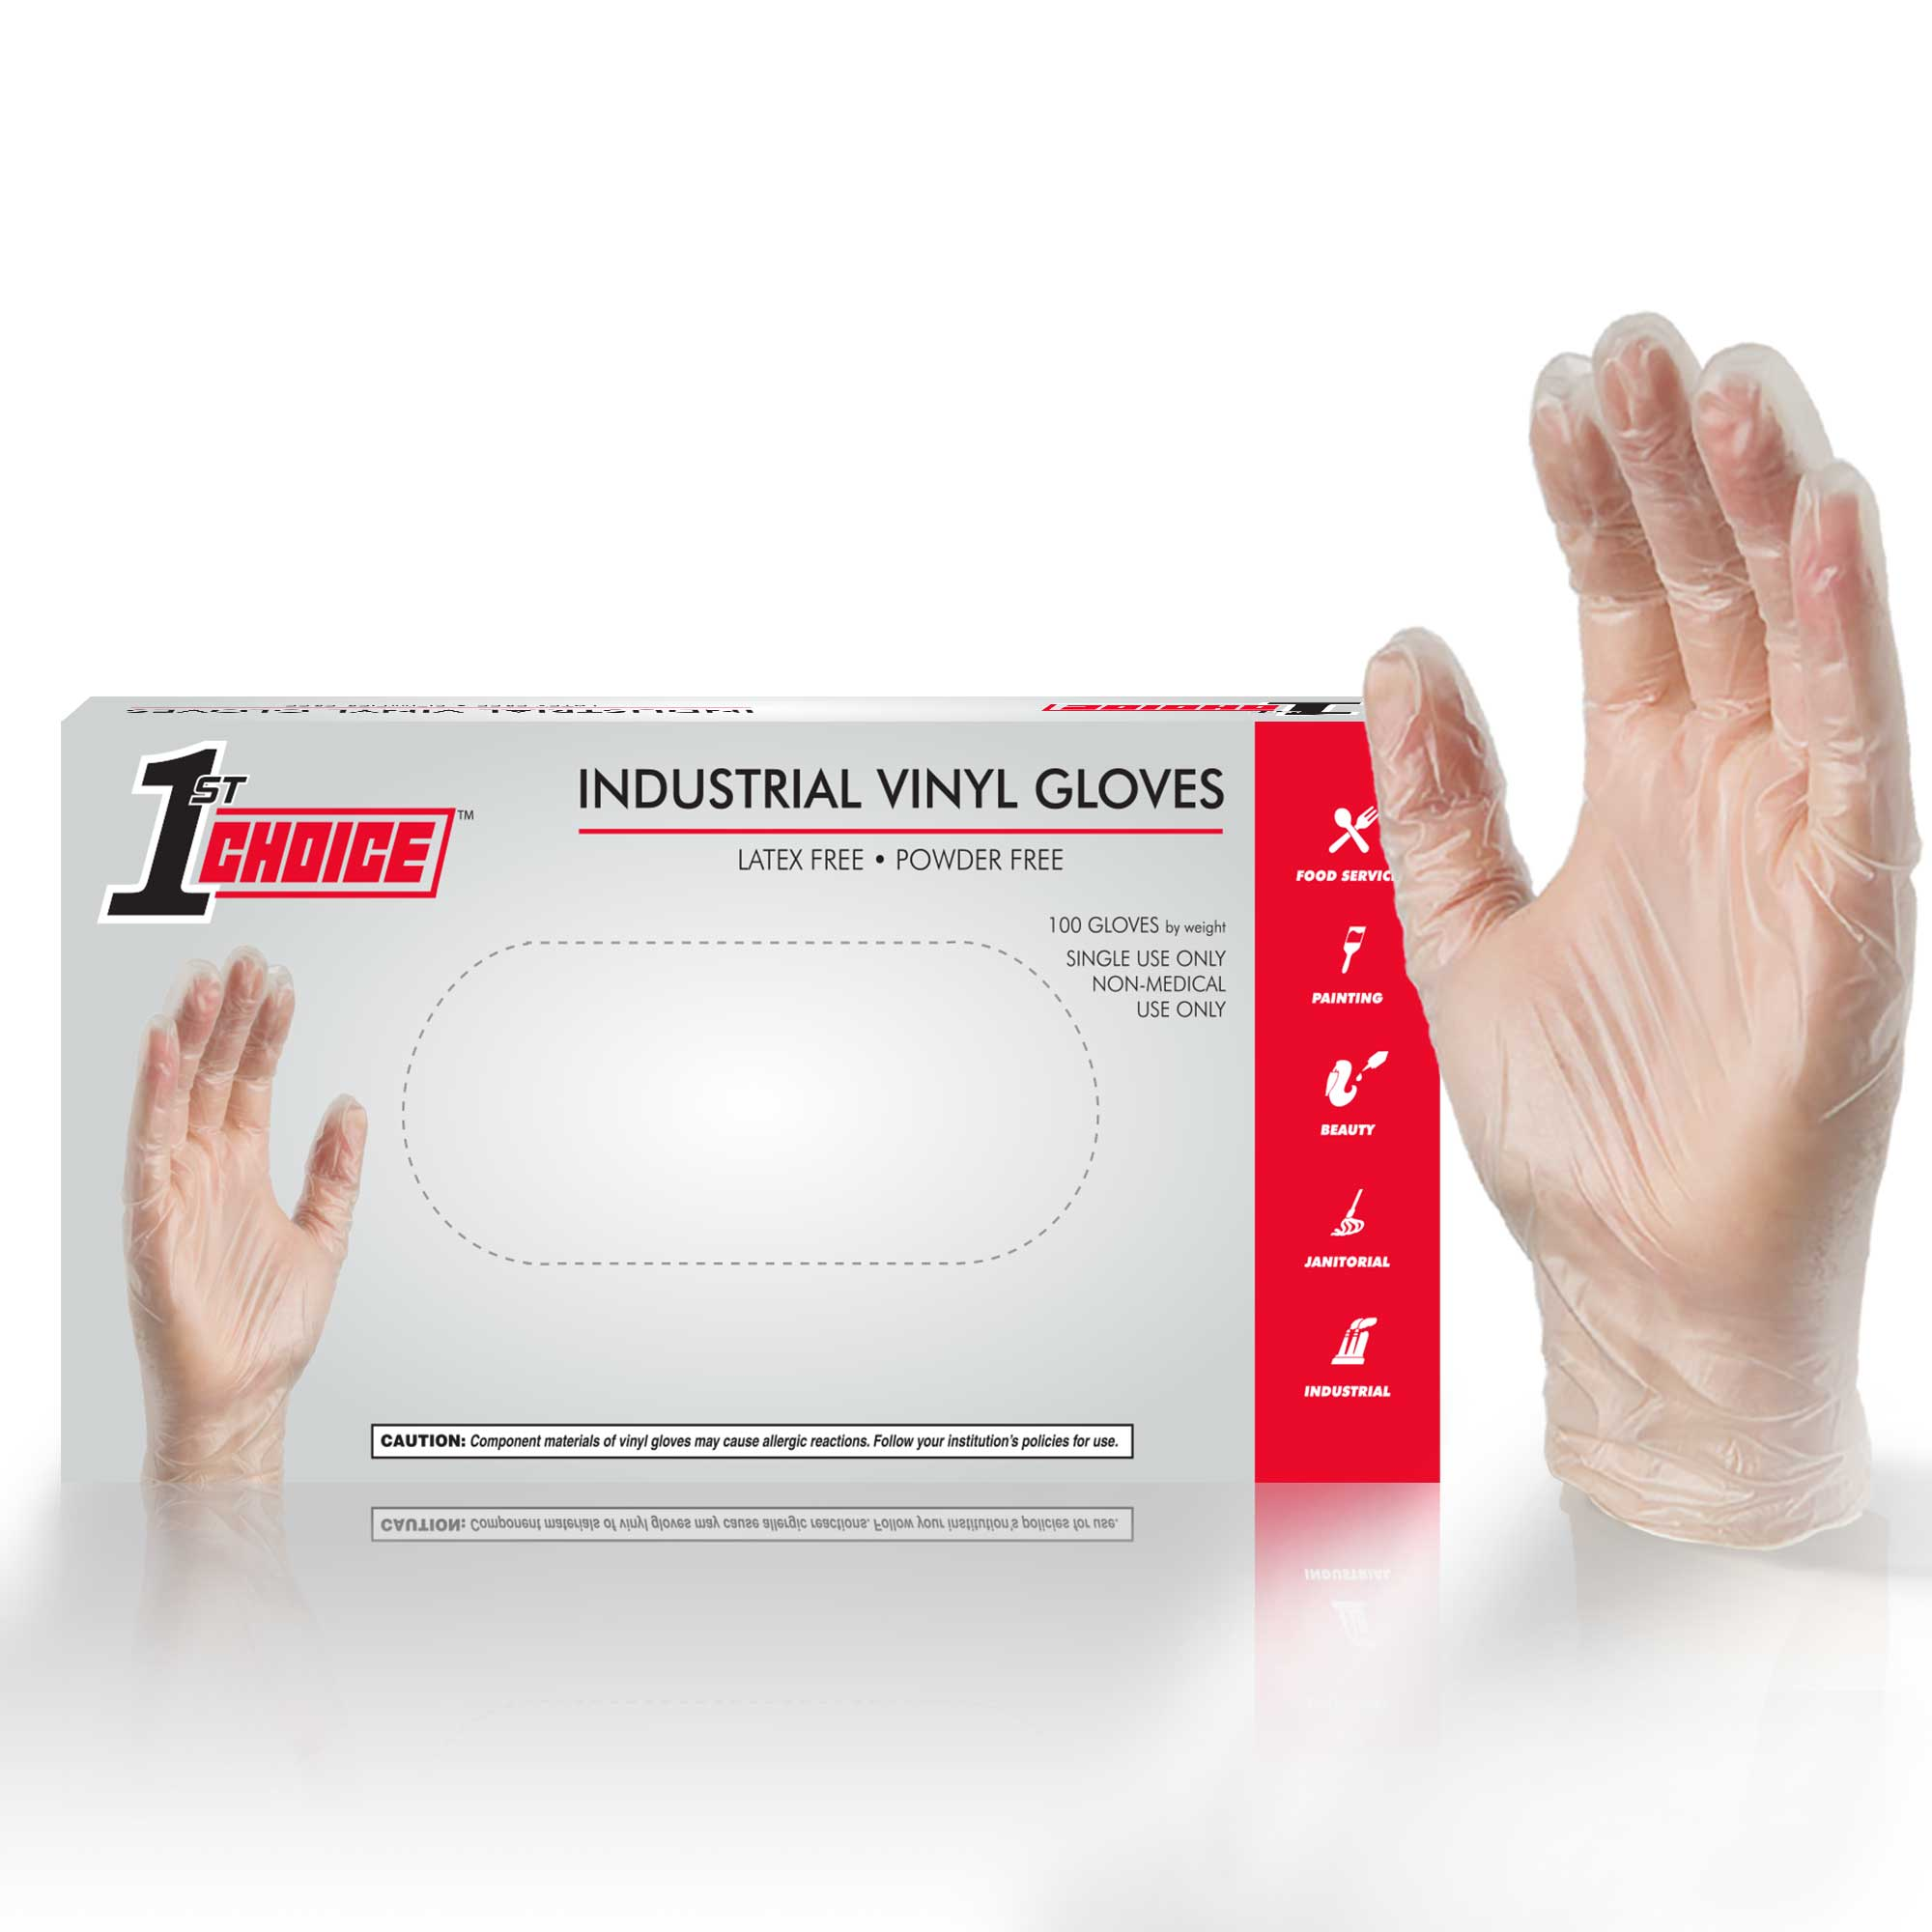 1st Choice 3 Mil Clear Industrial Vinyl Disposable Gloves (Box of 100)